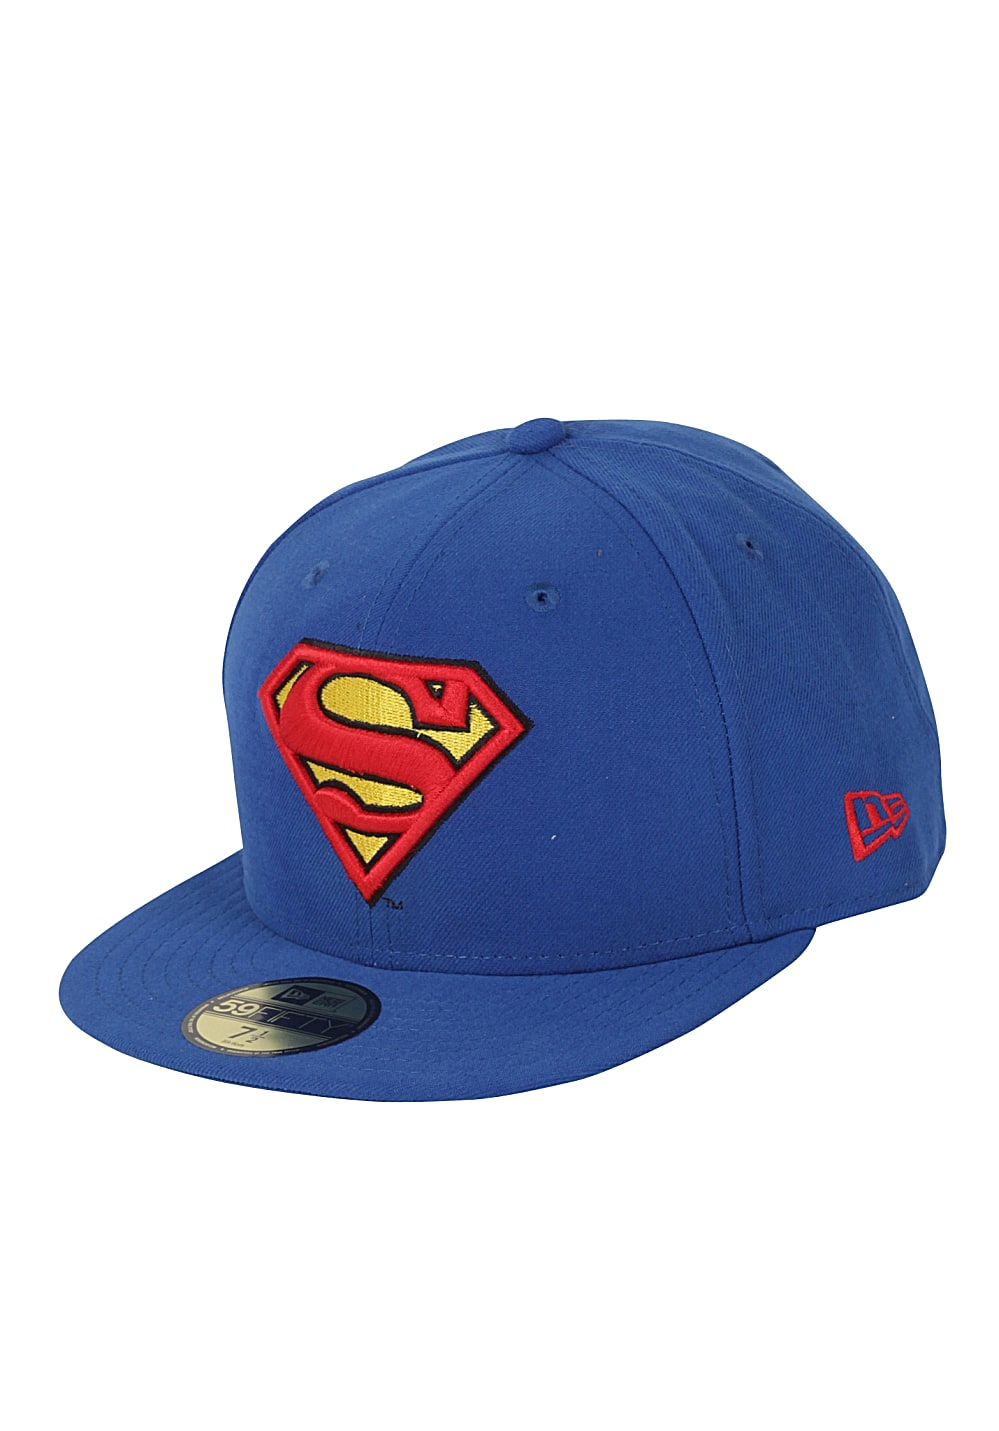 NEW Era 59Fifty Superman Fitted Cap - Blau   Accessoires > Caps > Fitted Caps   new era